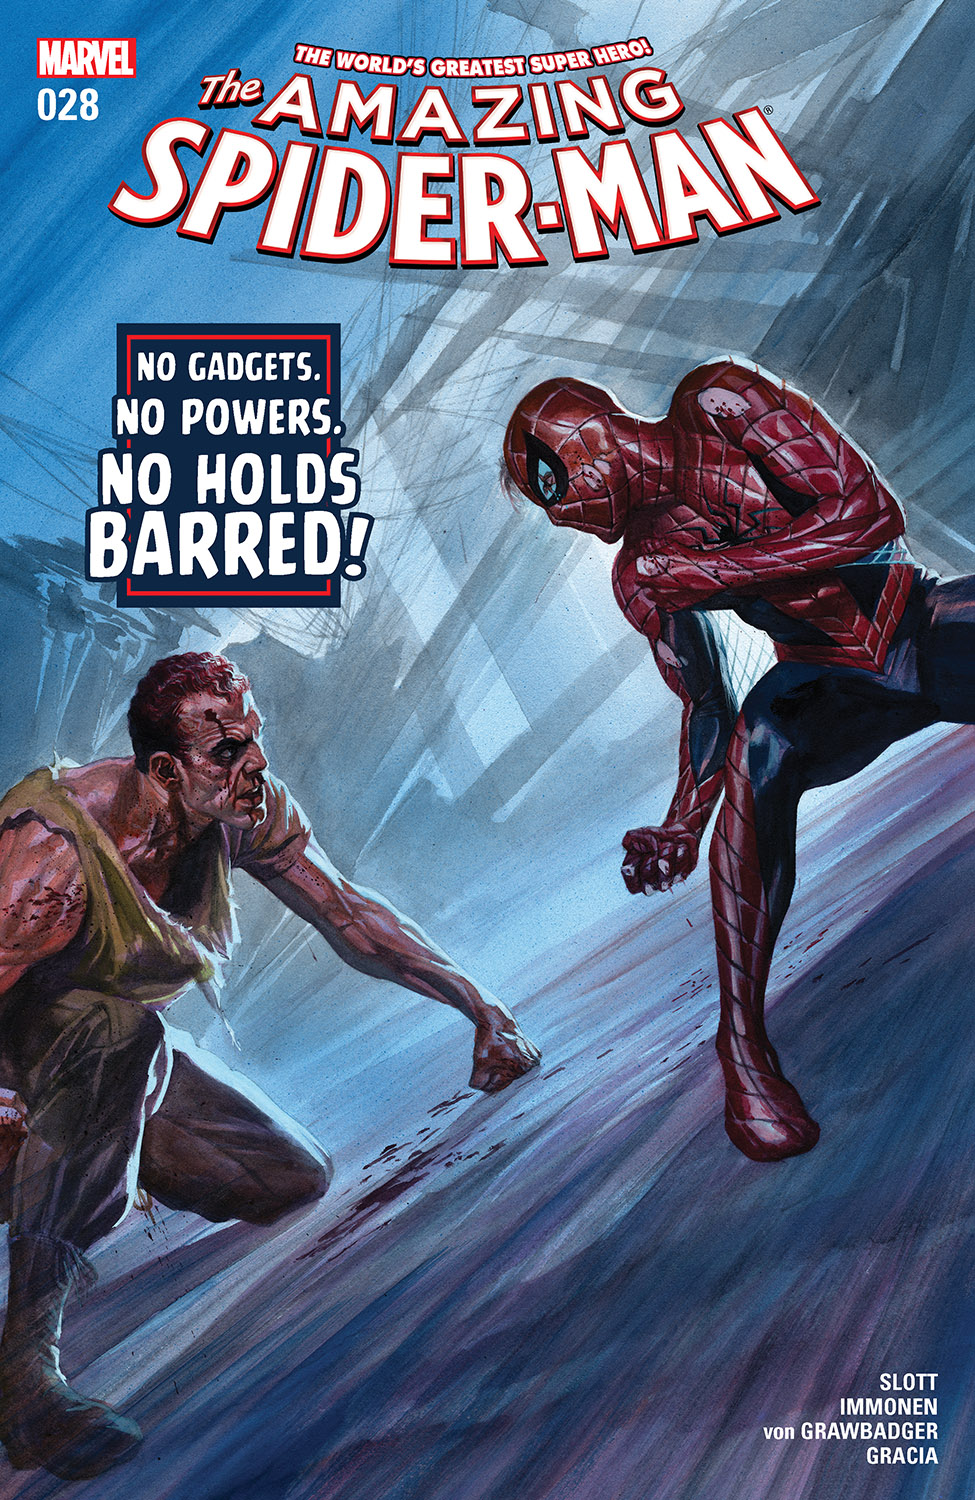 The Amazing Spider-Man (2015) #28